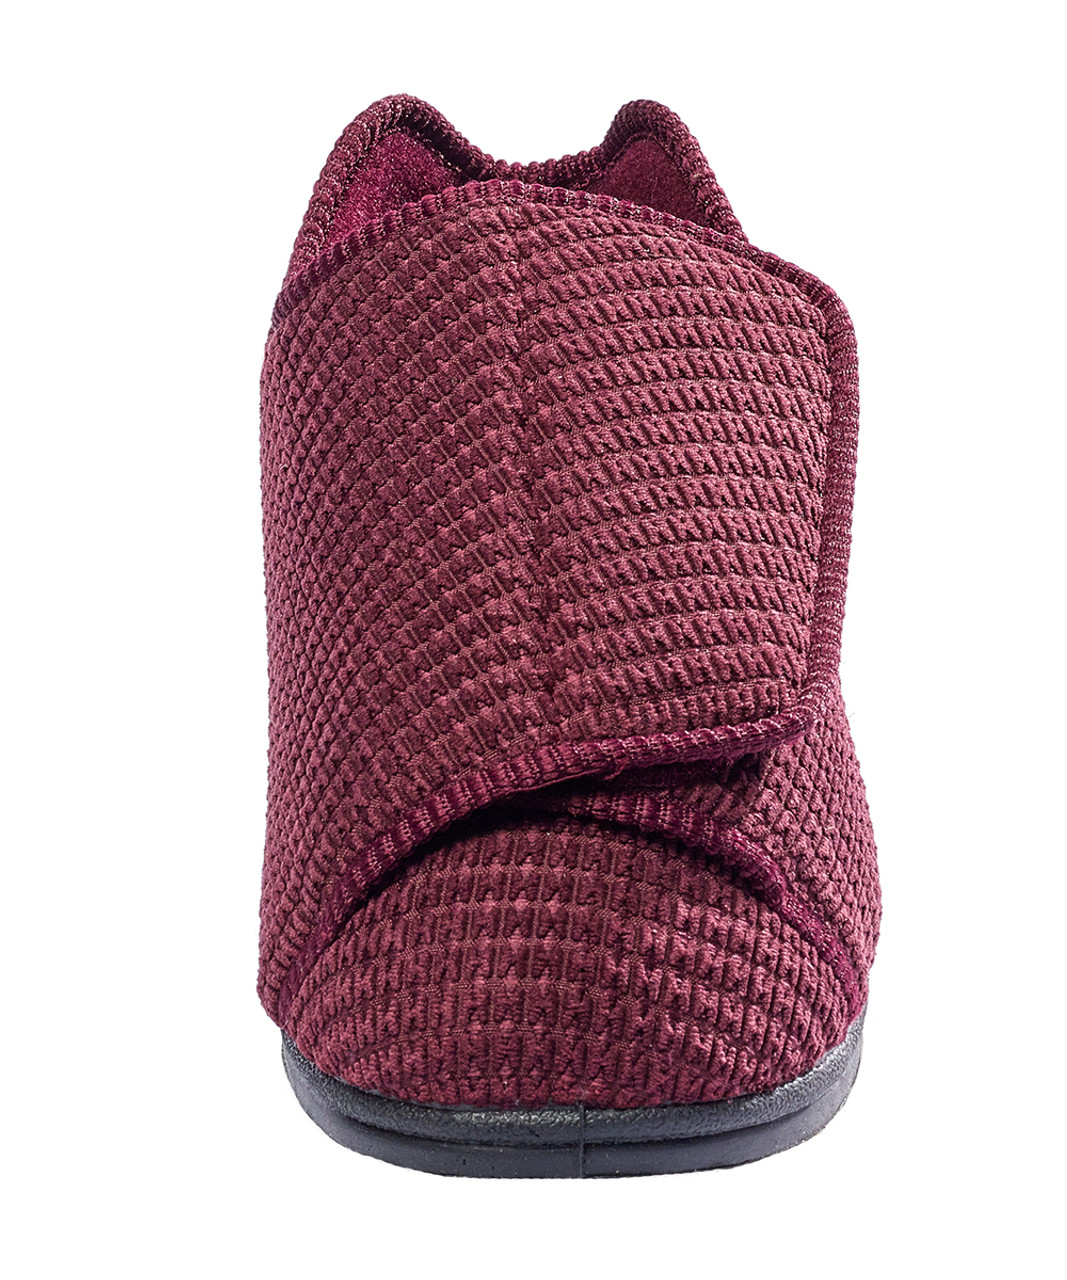 267ded48156 Silvert s 101000106 Womens Extra Extra Wide Width Adaptive Slippers